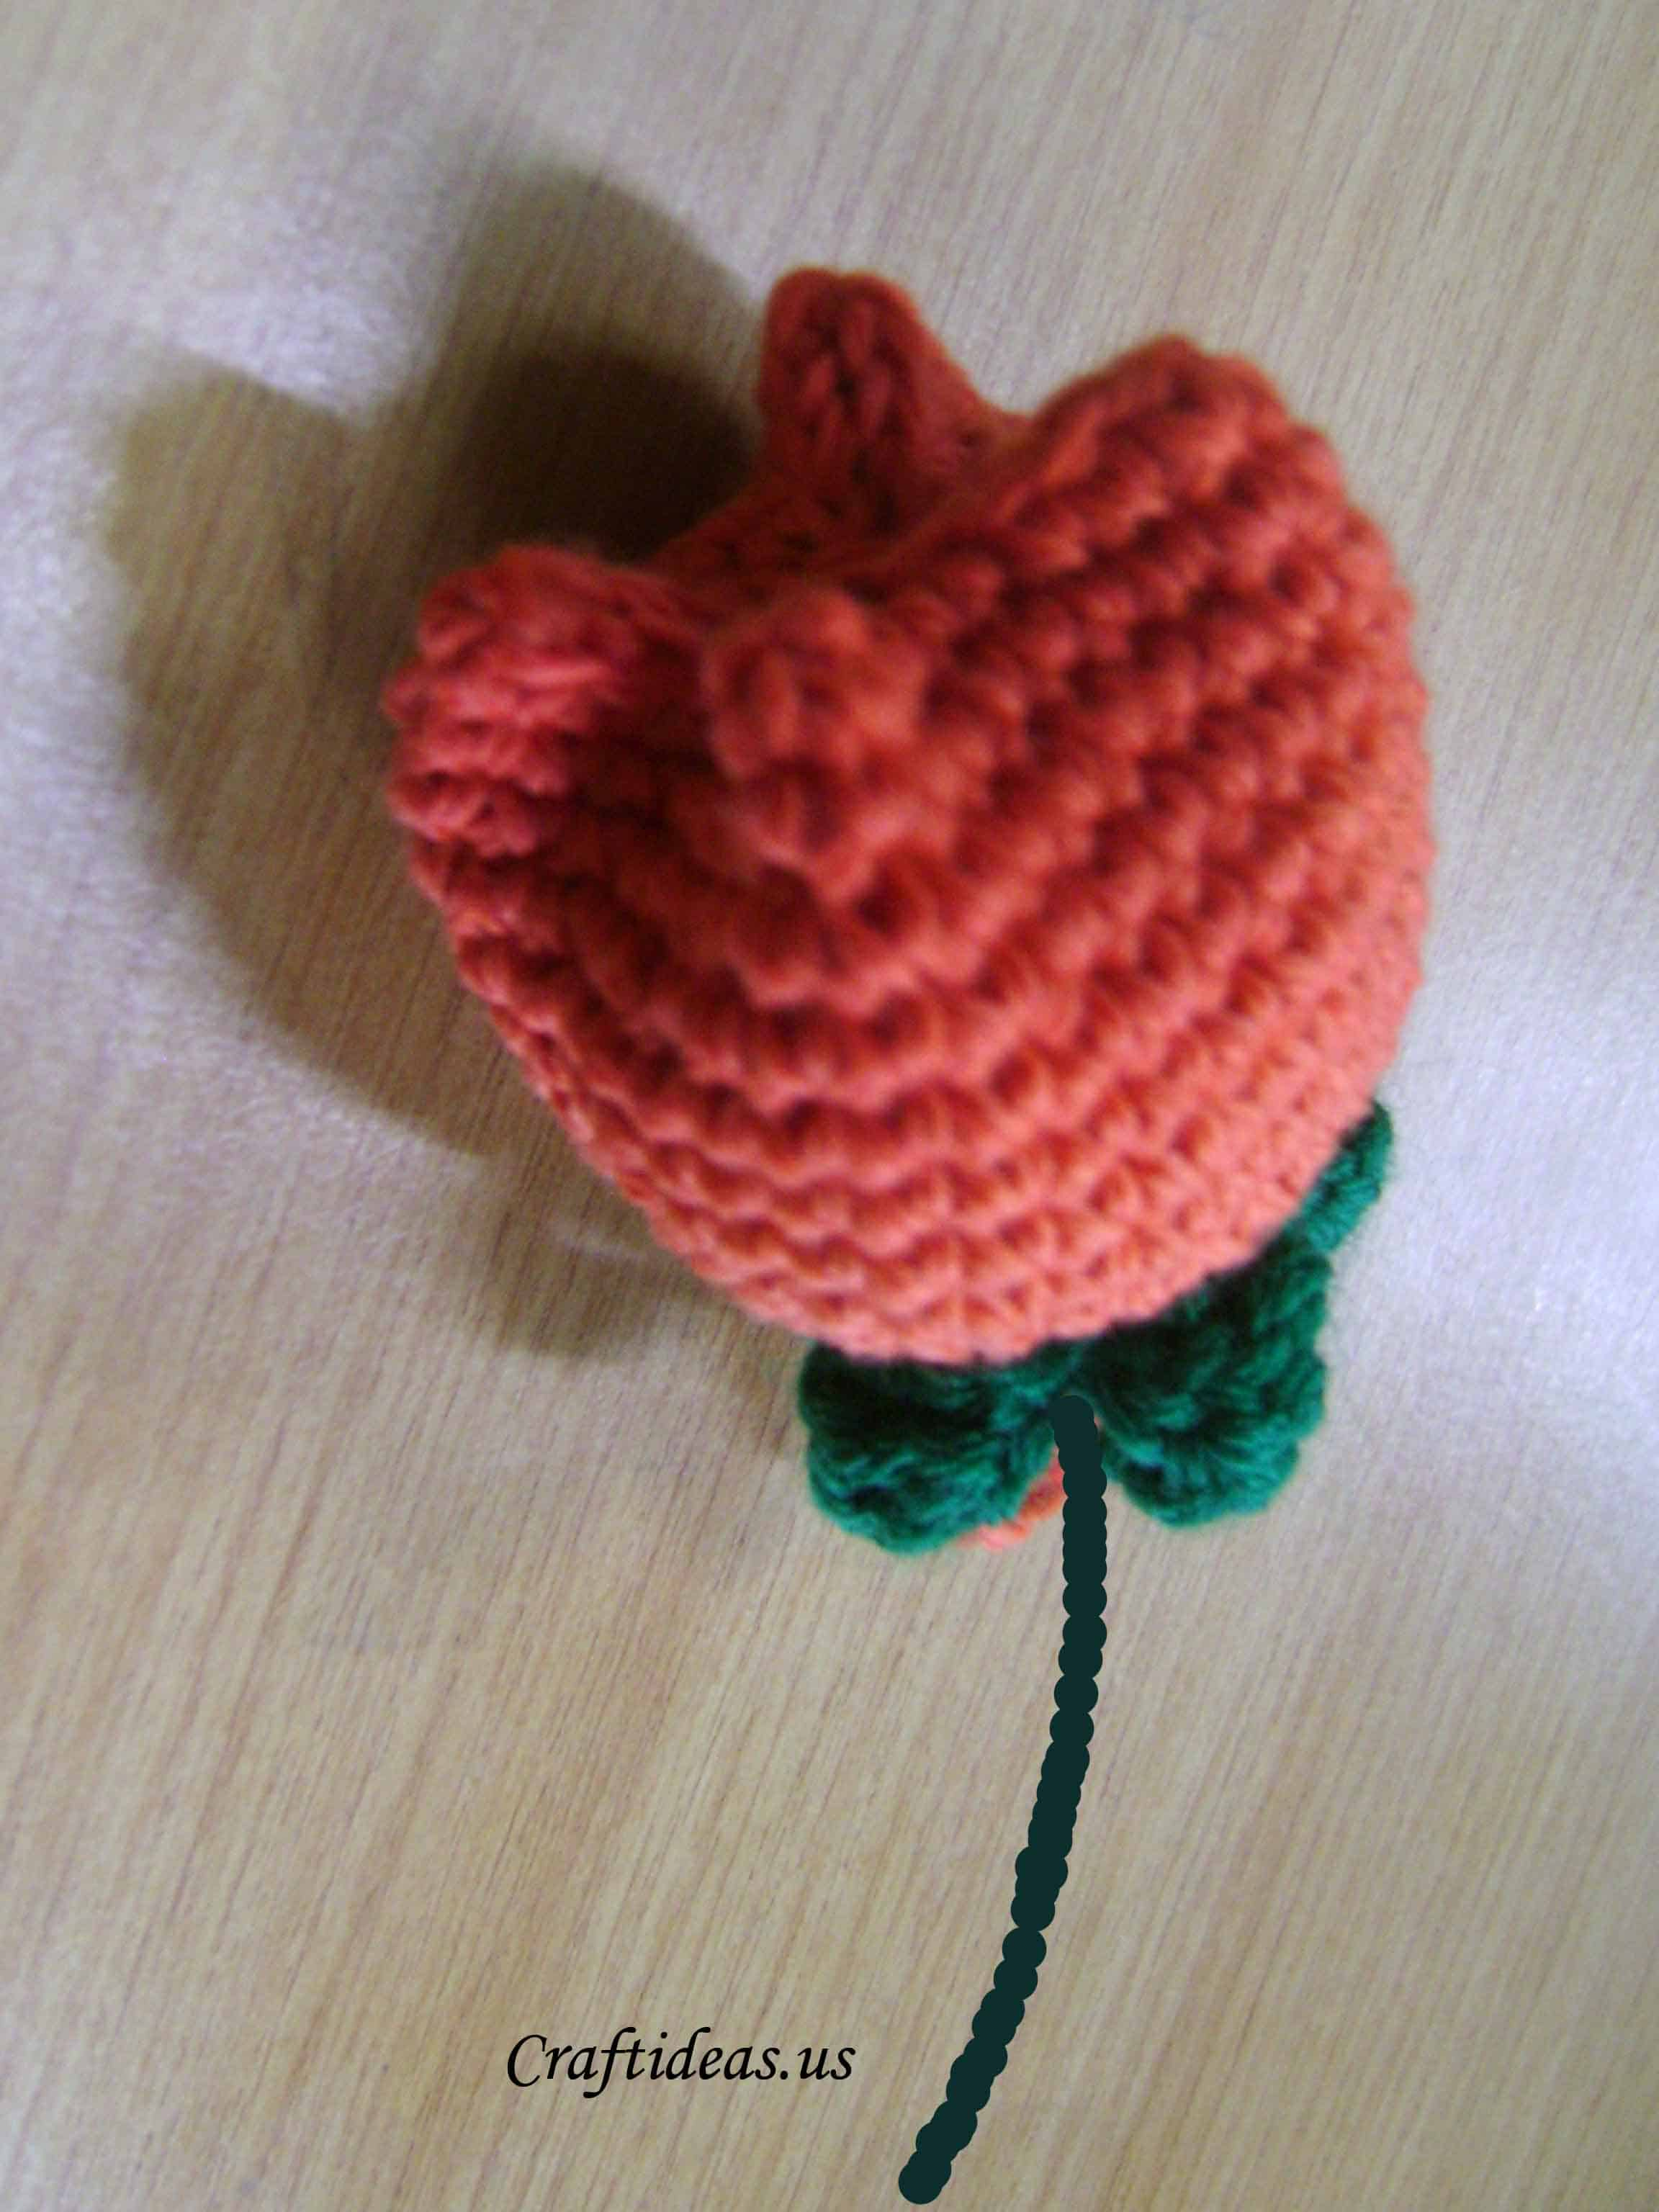 Crocheted tulip flower